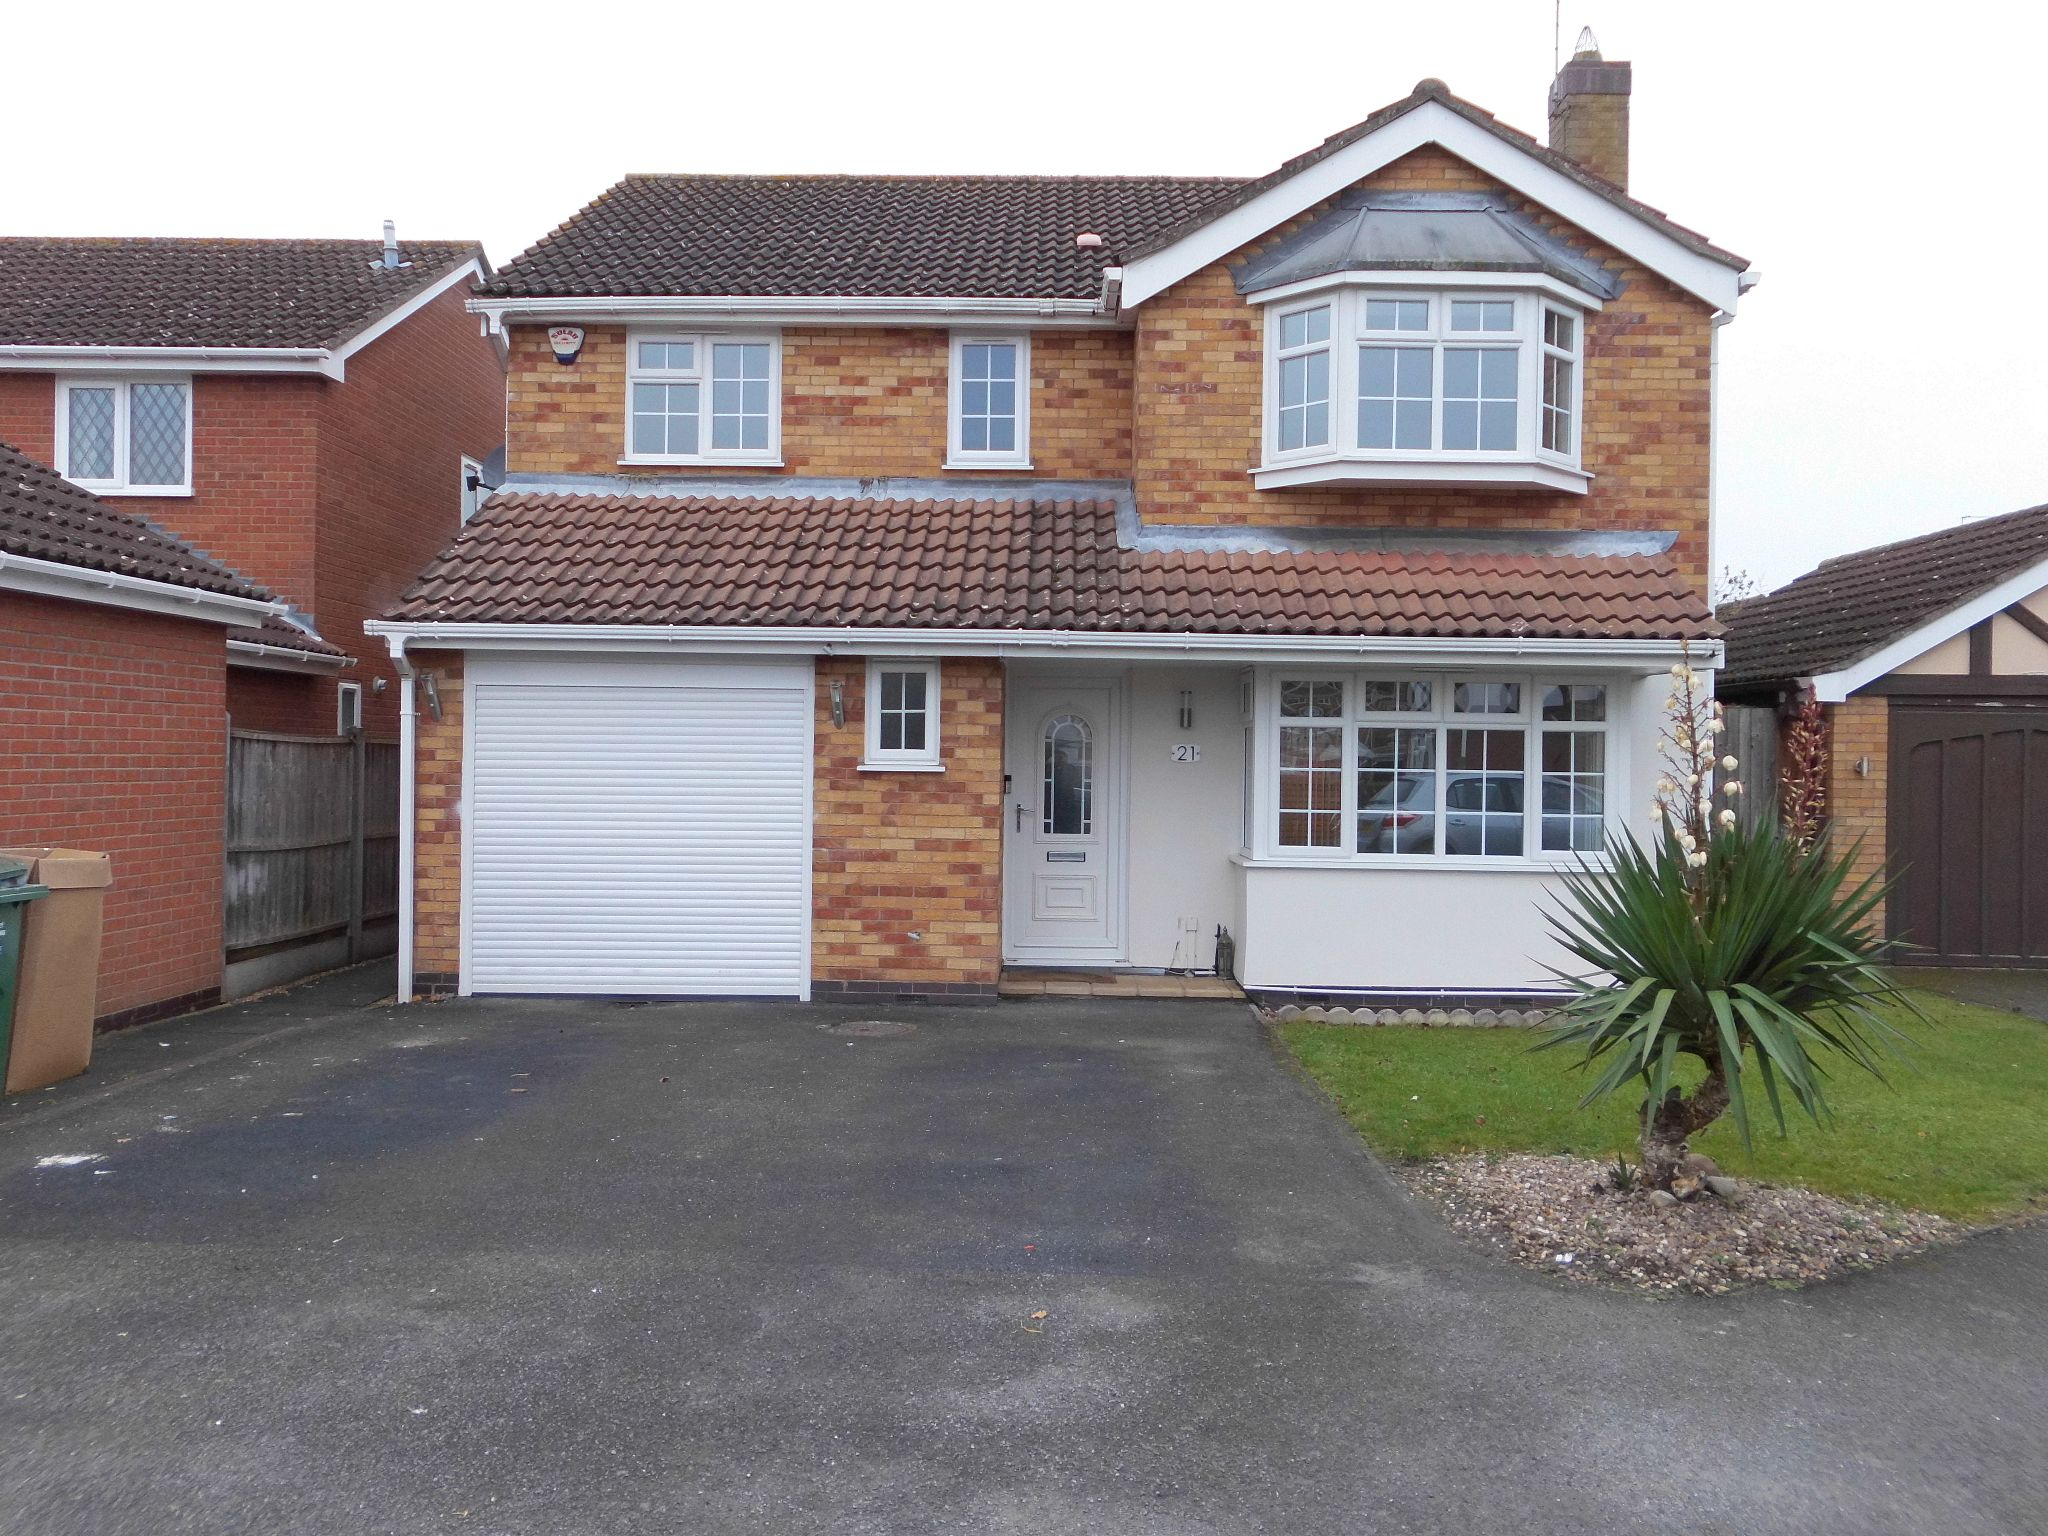 4 bedroom detached house Sold in Leicester - Photograph 1.